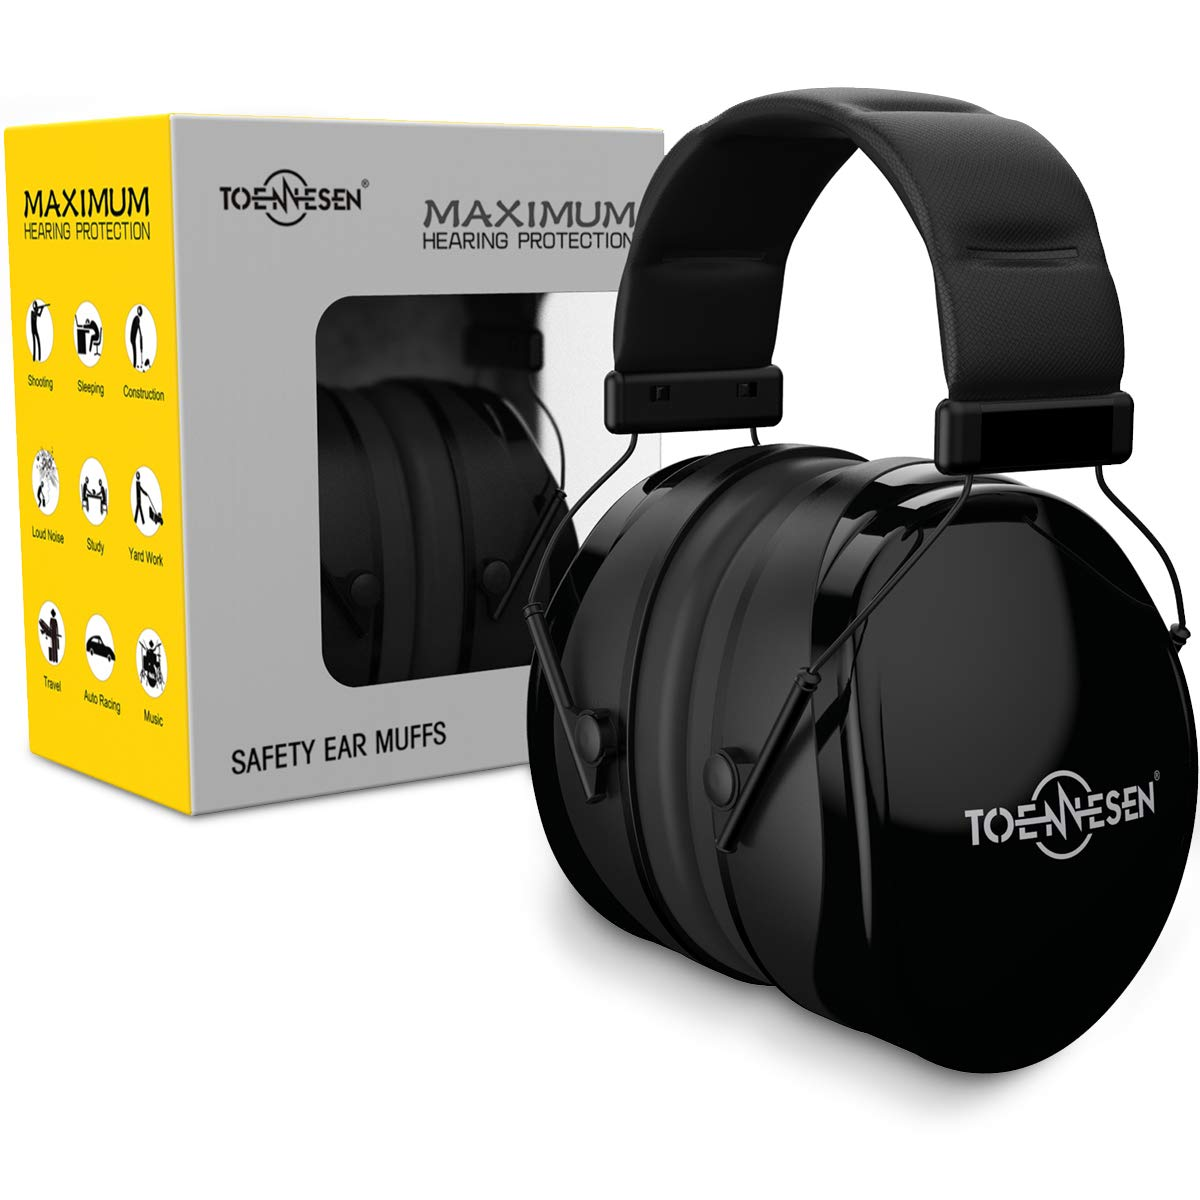 Noise Reduction Ear Muffs, Safety Earmuffs Hearing Protection Fits Adults and Kids - TOENNESEN 36dB NRR Ear Defenders for Shooting/Hunting/Working/Lawn Mowing/Loud Events (Black)